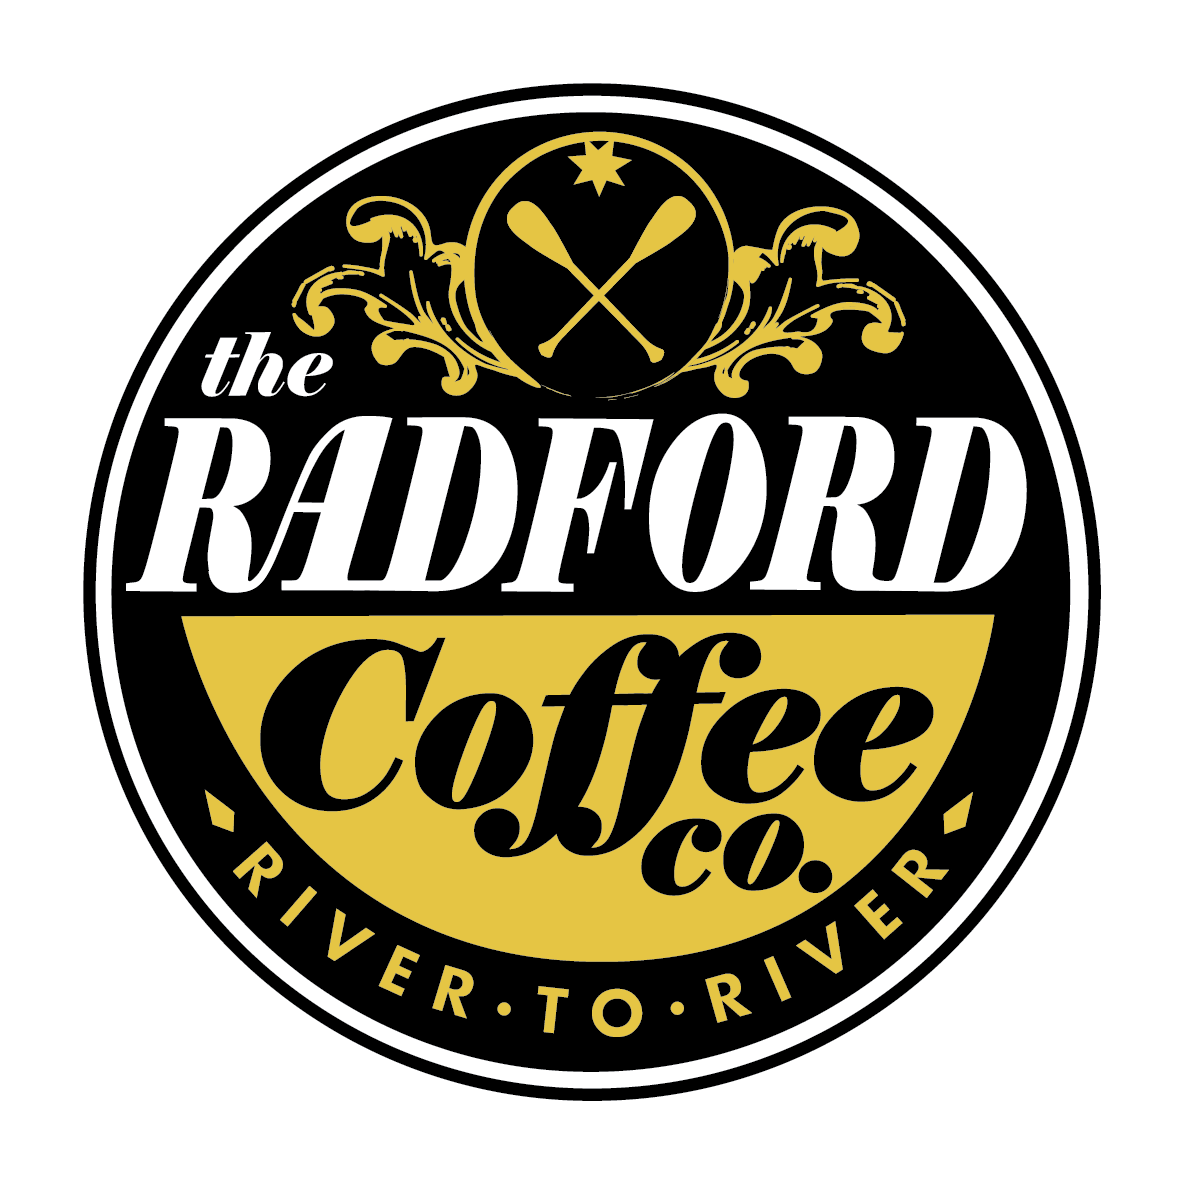 Radford Coffee Company